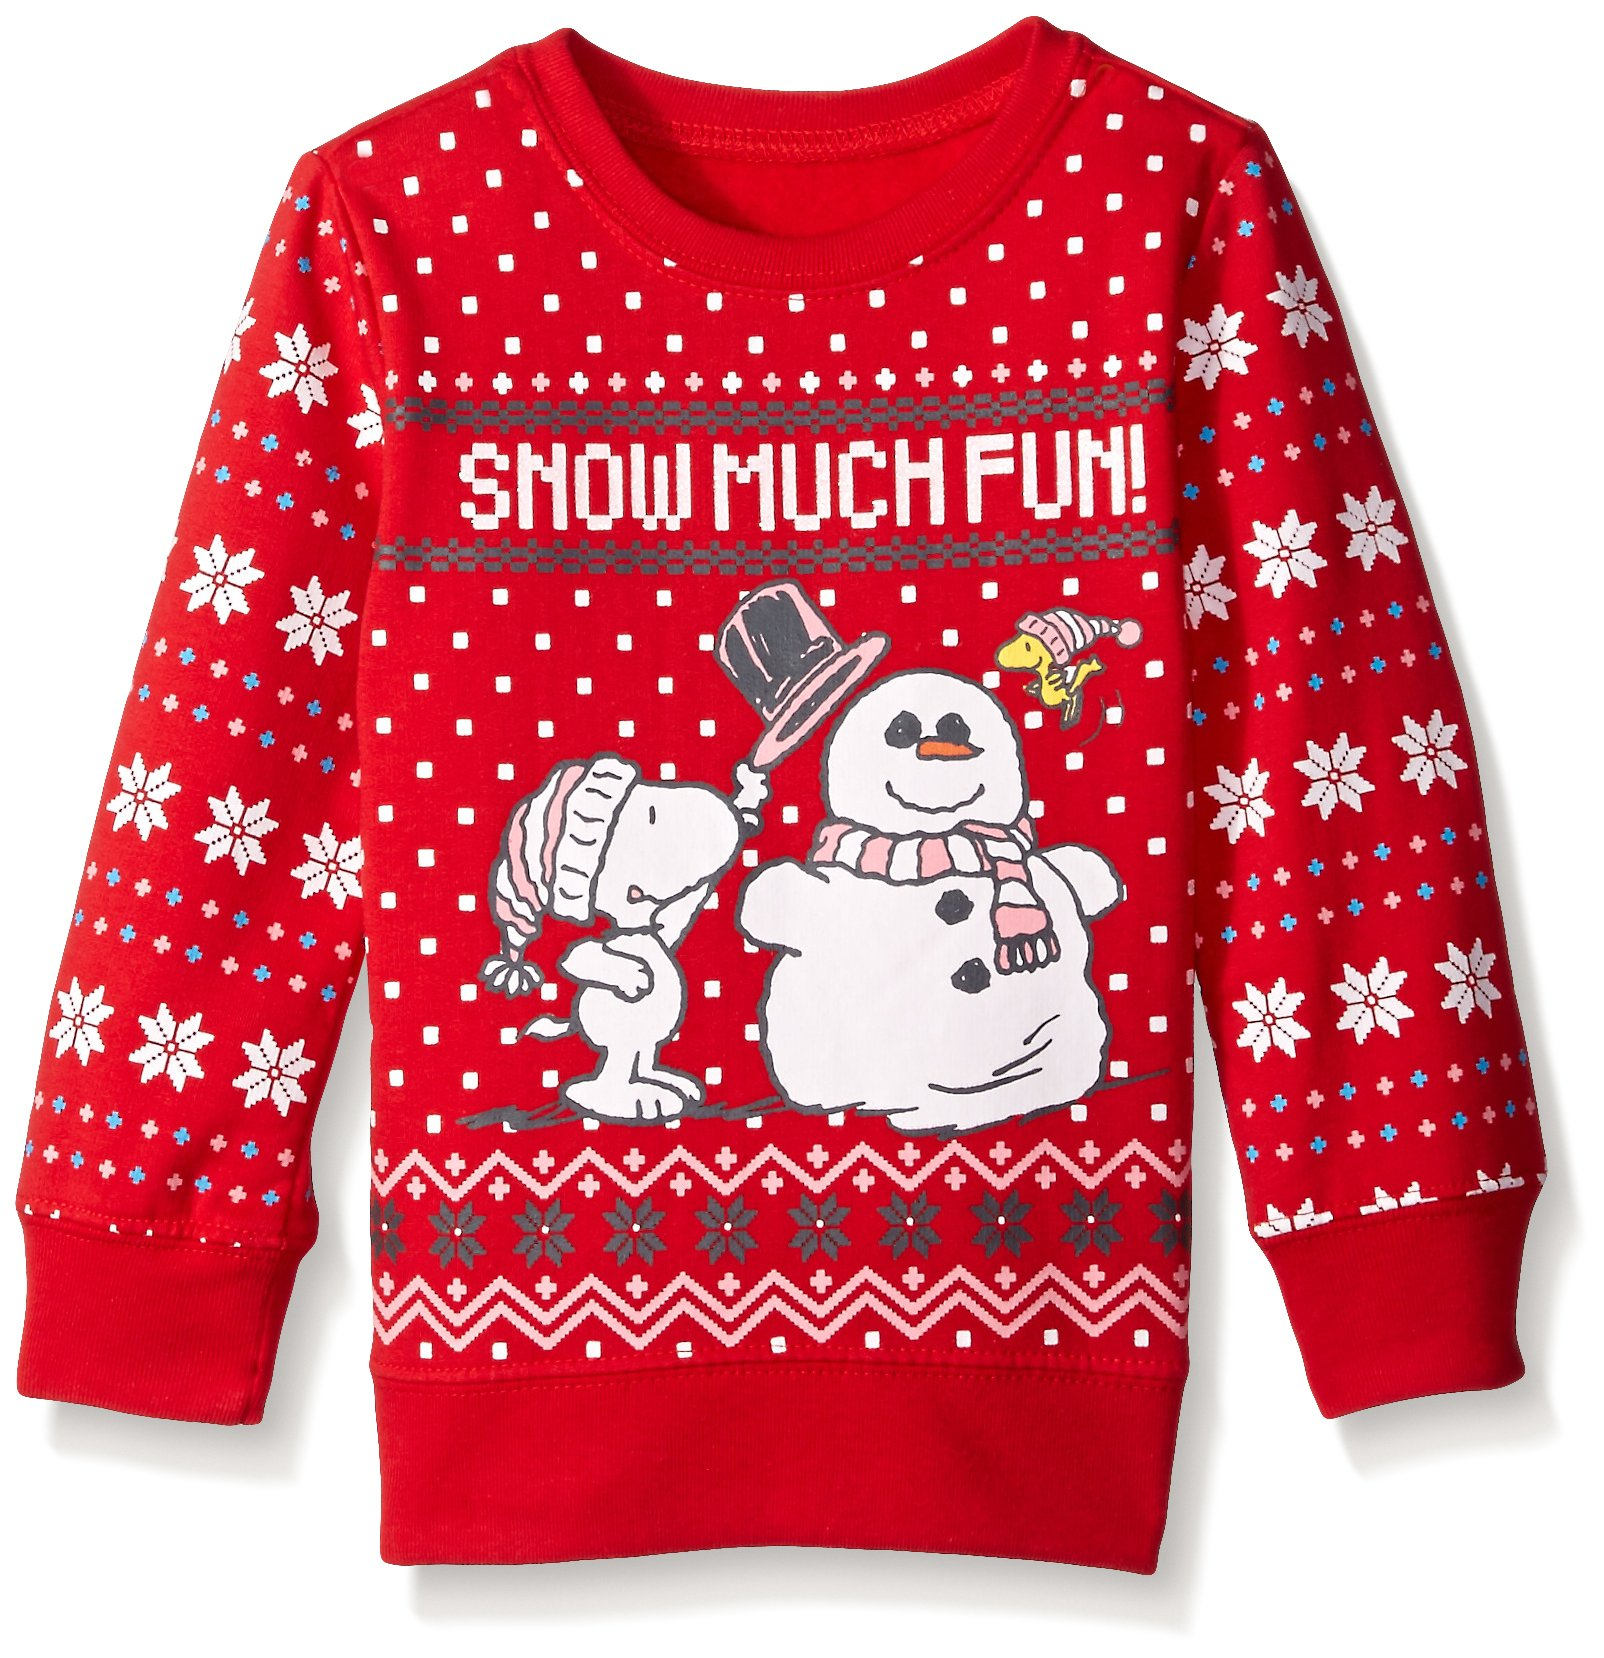 Peanuts Little Girls' Snow Much Fun Nordic Crewneck Sweater, Red, 4T